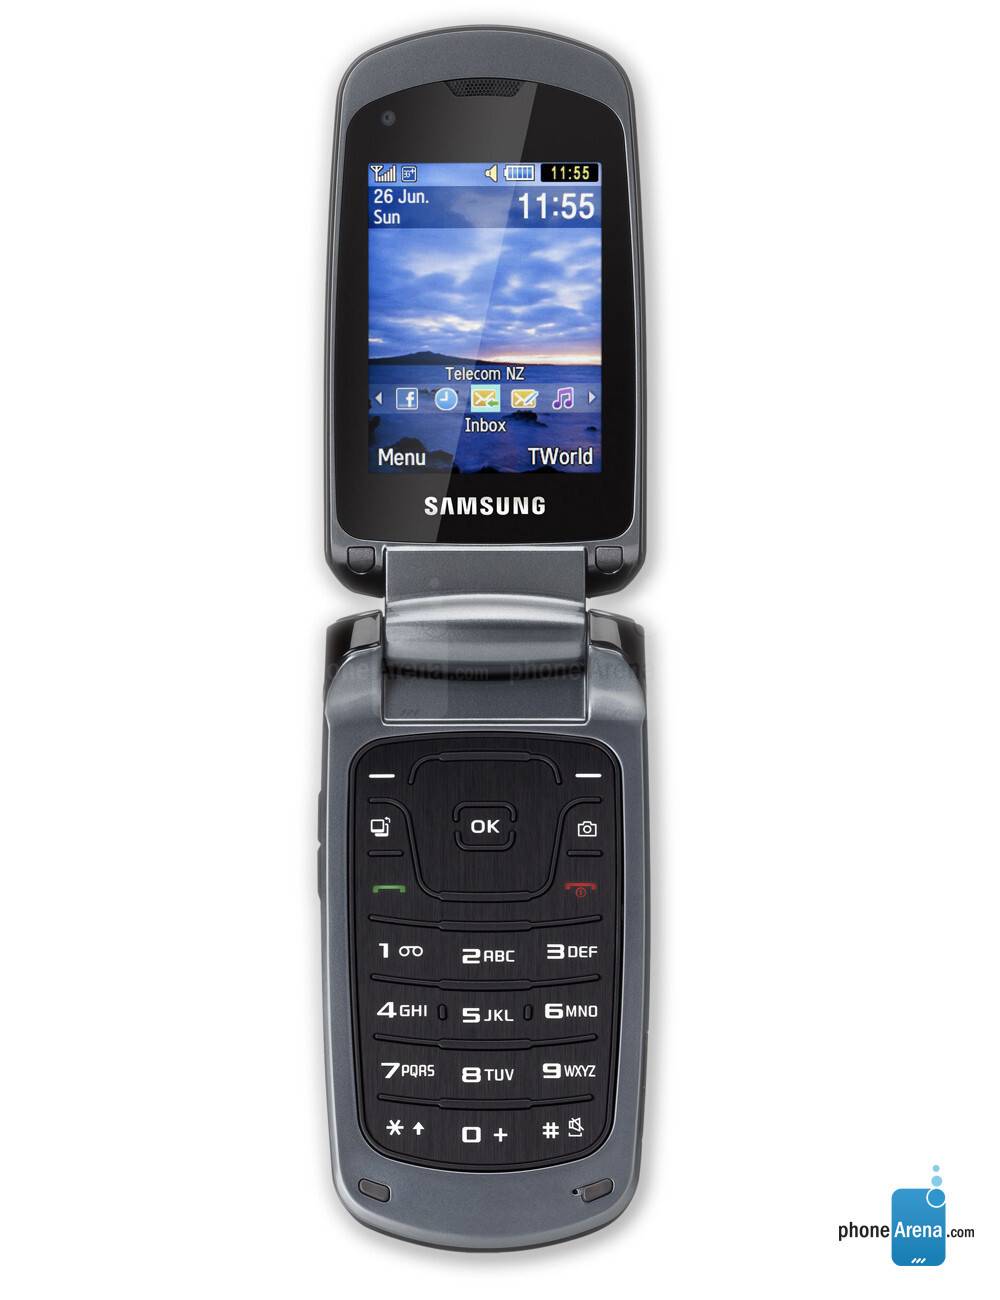 samsung s5511 photos rh phonearena com Verizon Samsung Flip Phone Manual Samsung TV Repair Manual